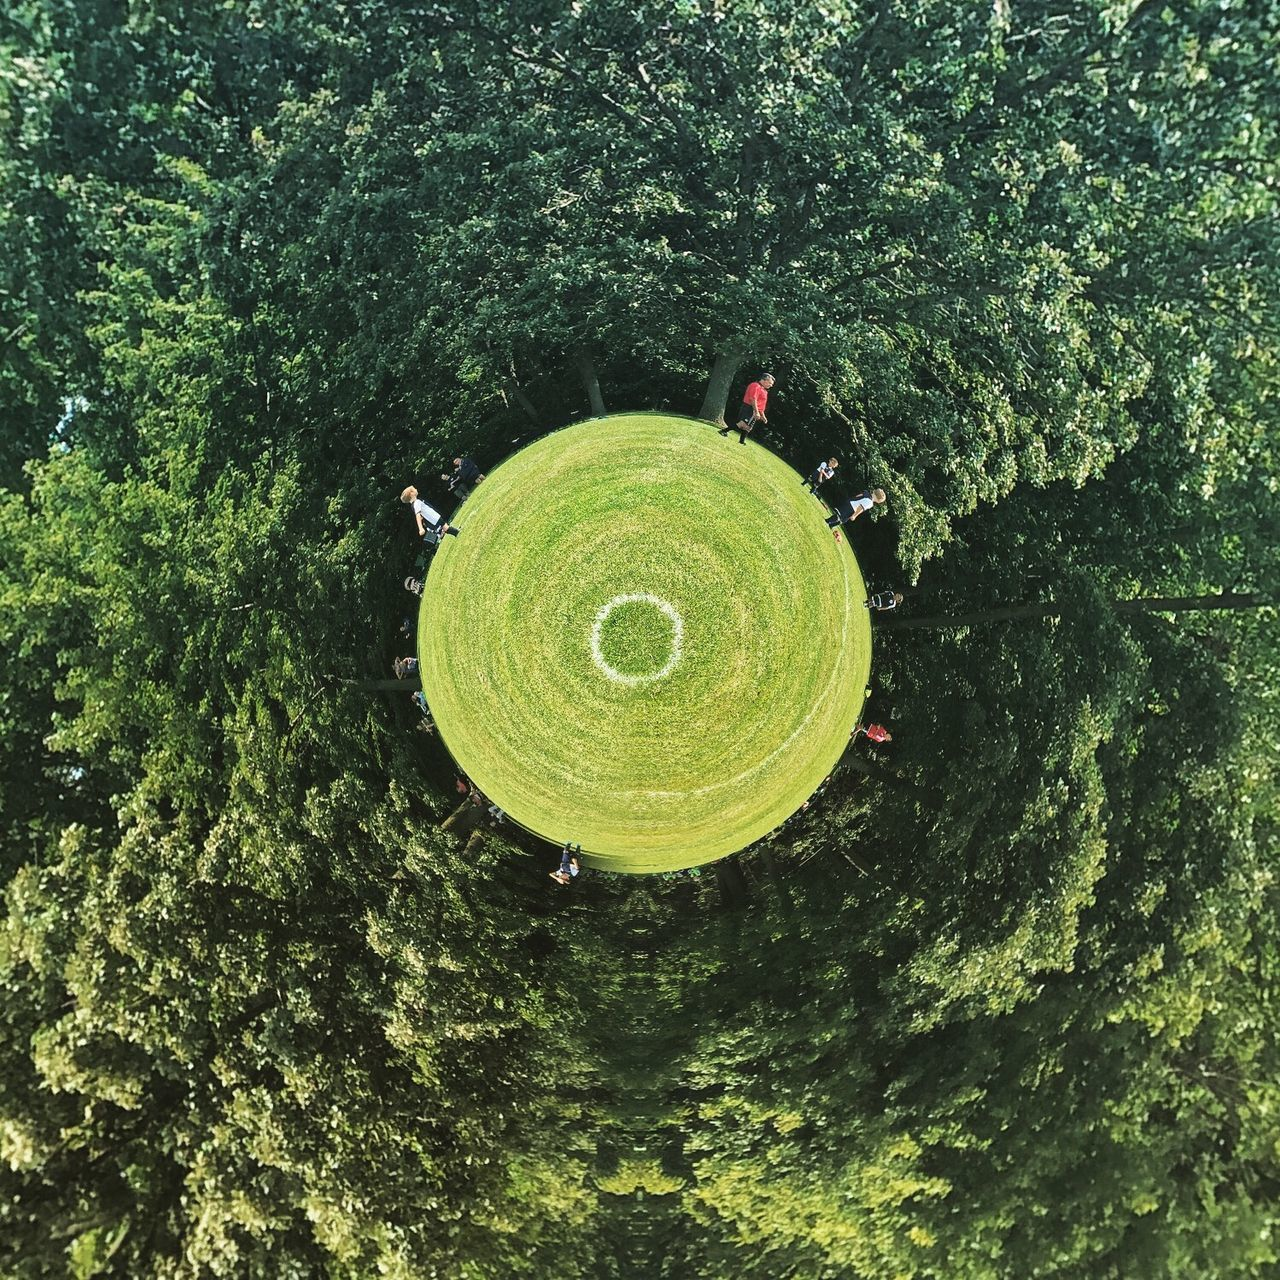 tree, circle, green color, growth, outdoors, no people, nature, day, high angle view, beauty in nature, tranquility, forest, scenics